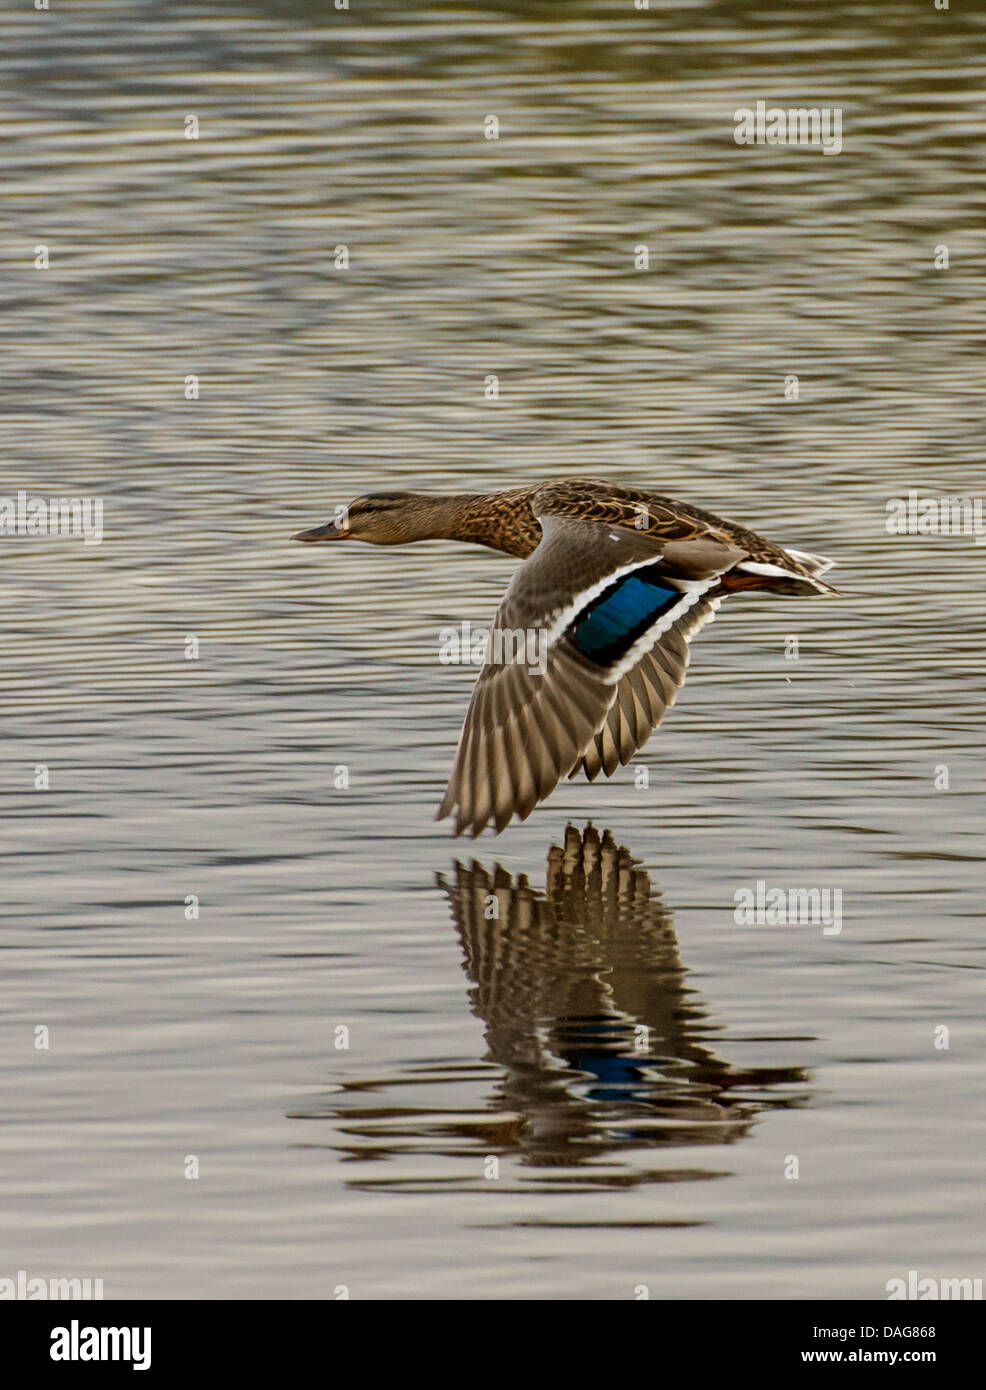 mallard (Anas platyrhynchos), flying closely to the water surface of a lake, Norway, Troms, Tromsoe, Prestvannet - Stock Image